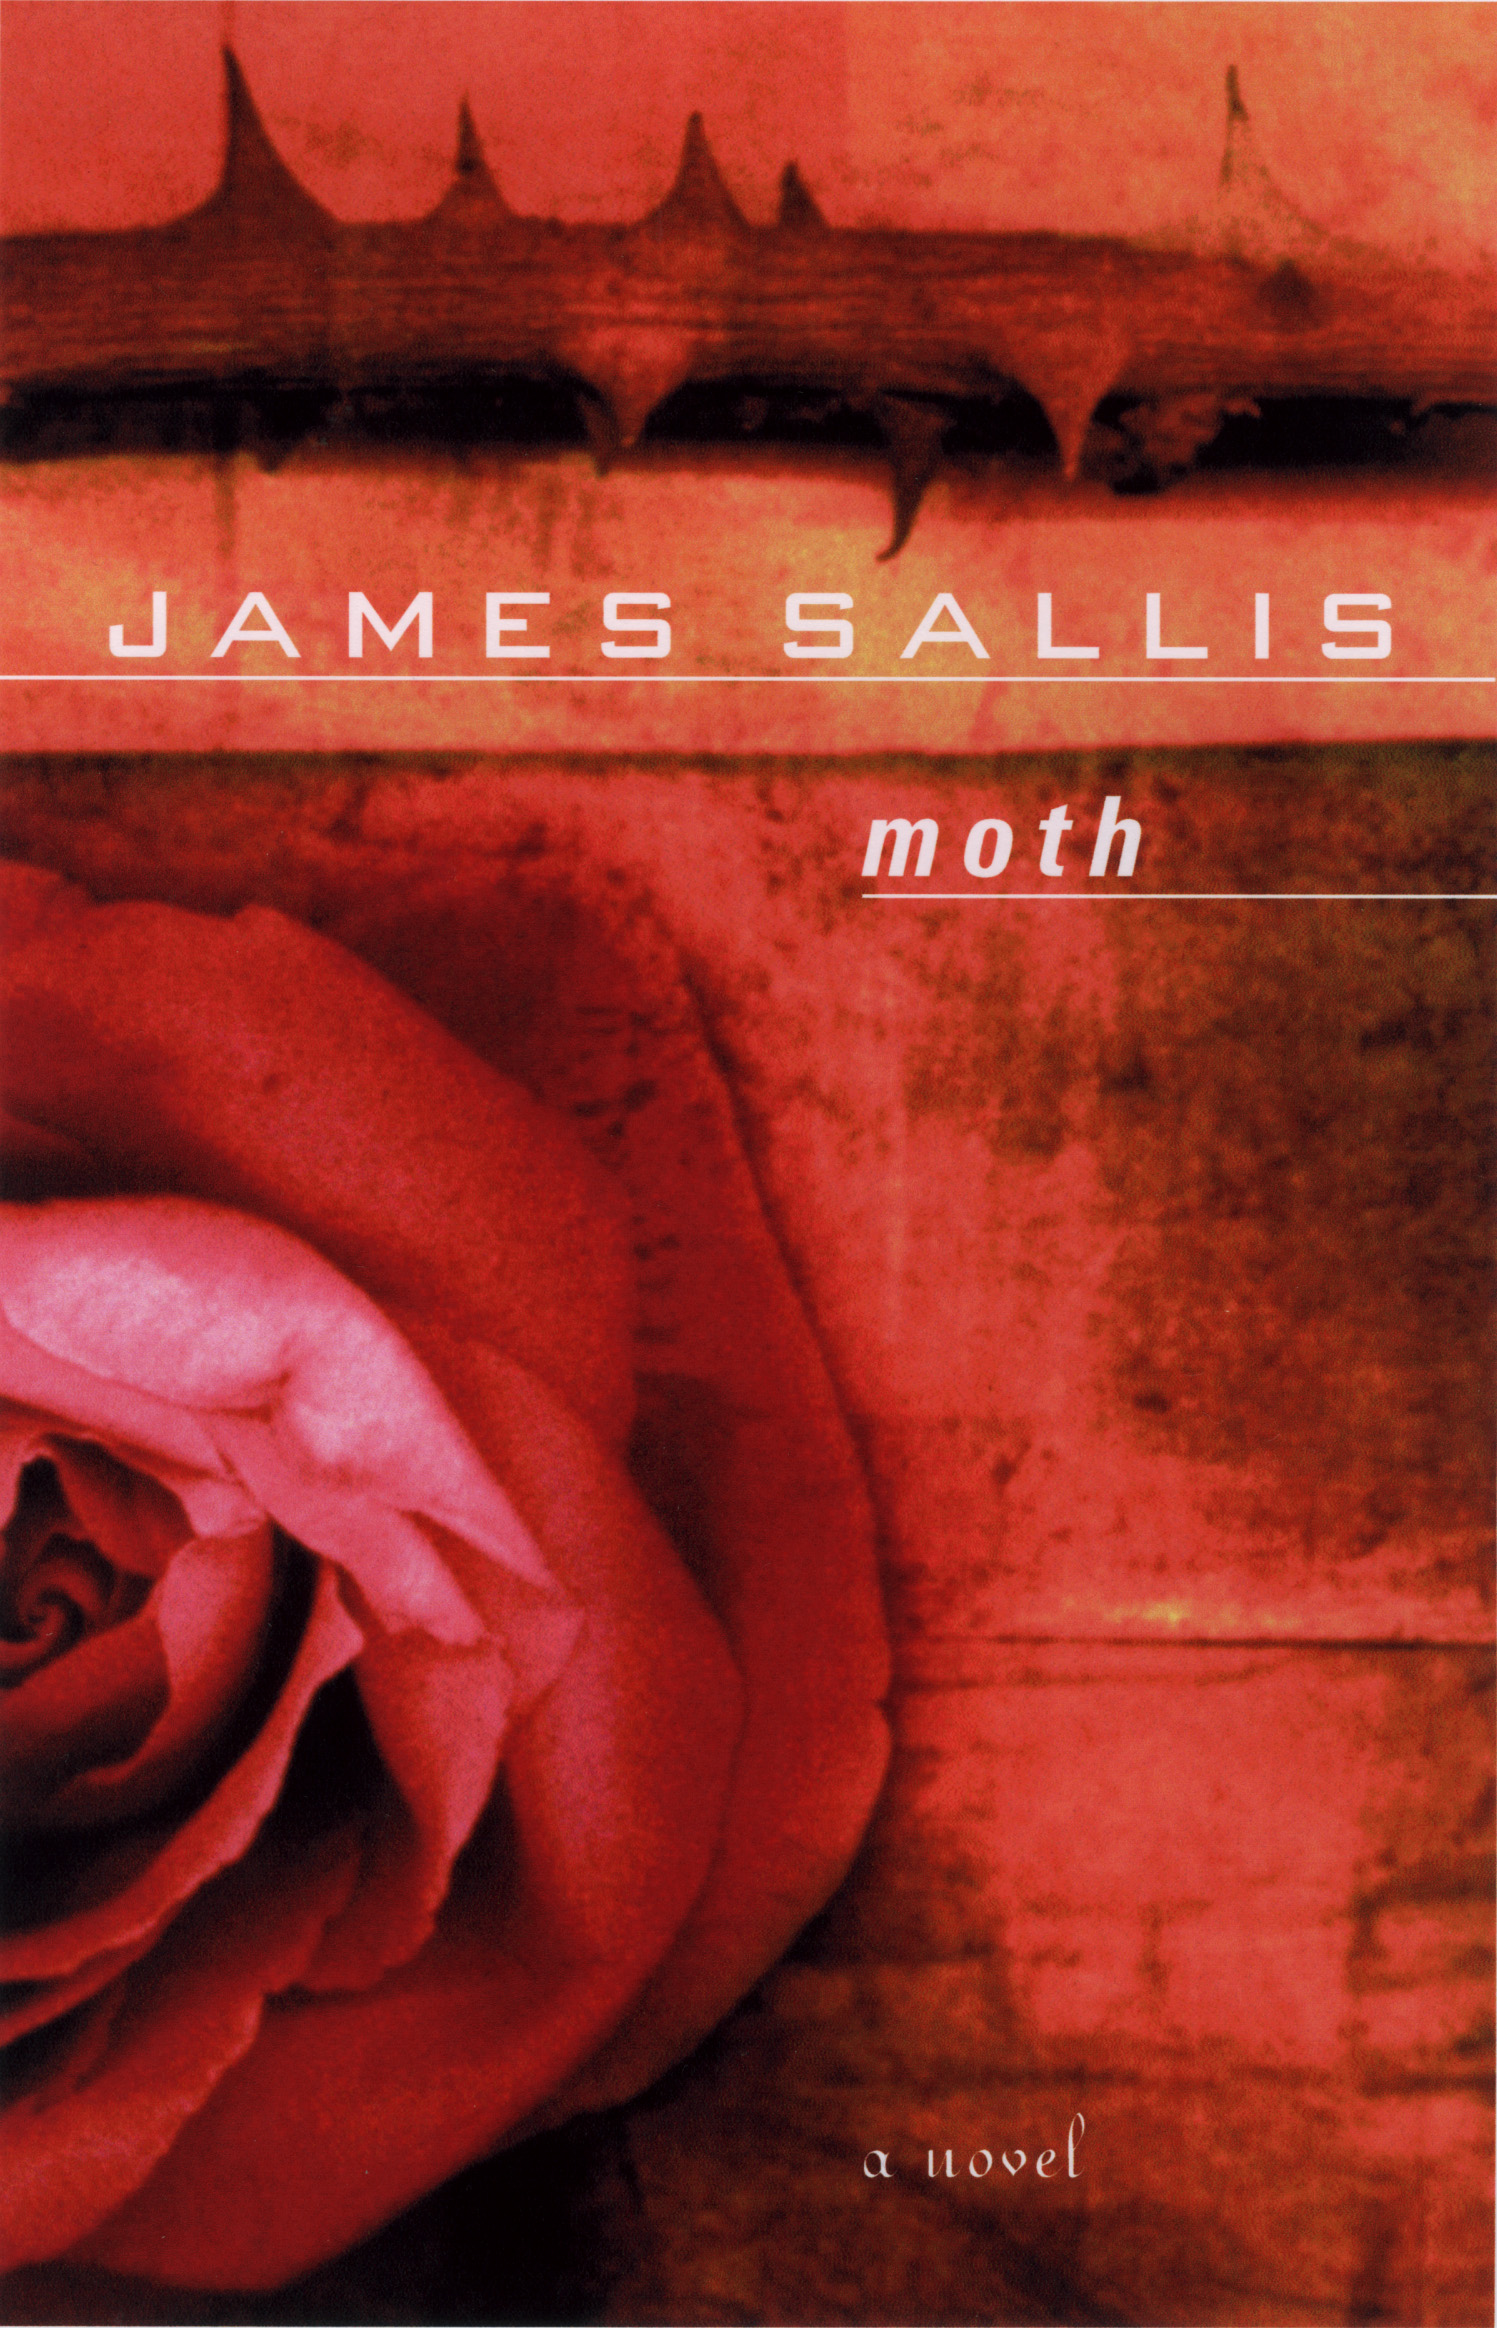 Cover for the US reissue of Moth